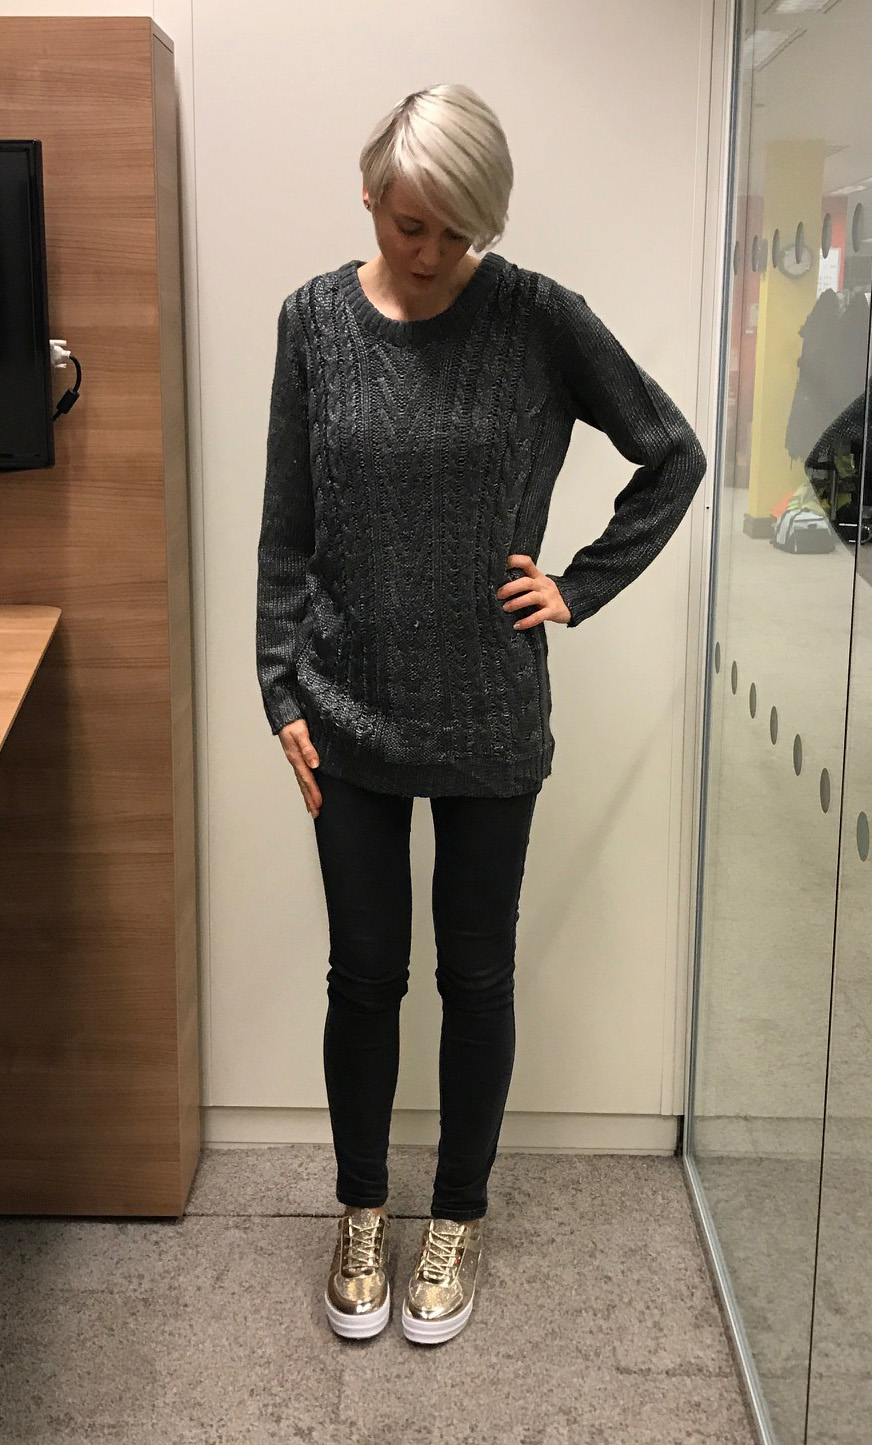 model wears grey jumper and metallic trainers from 10store.com